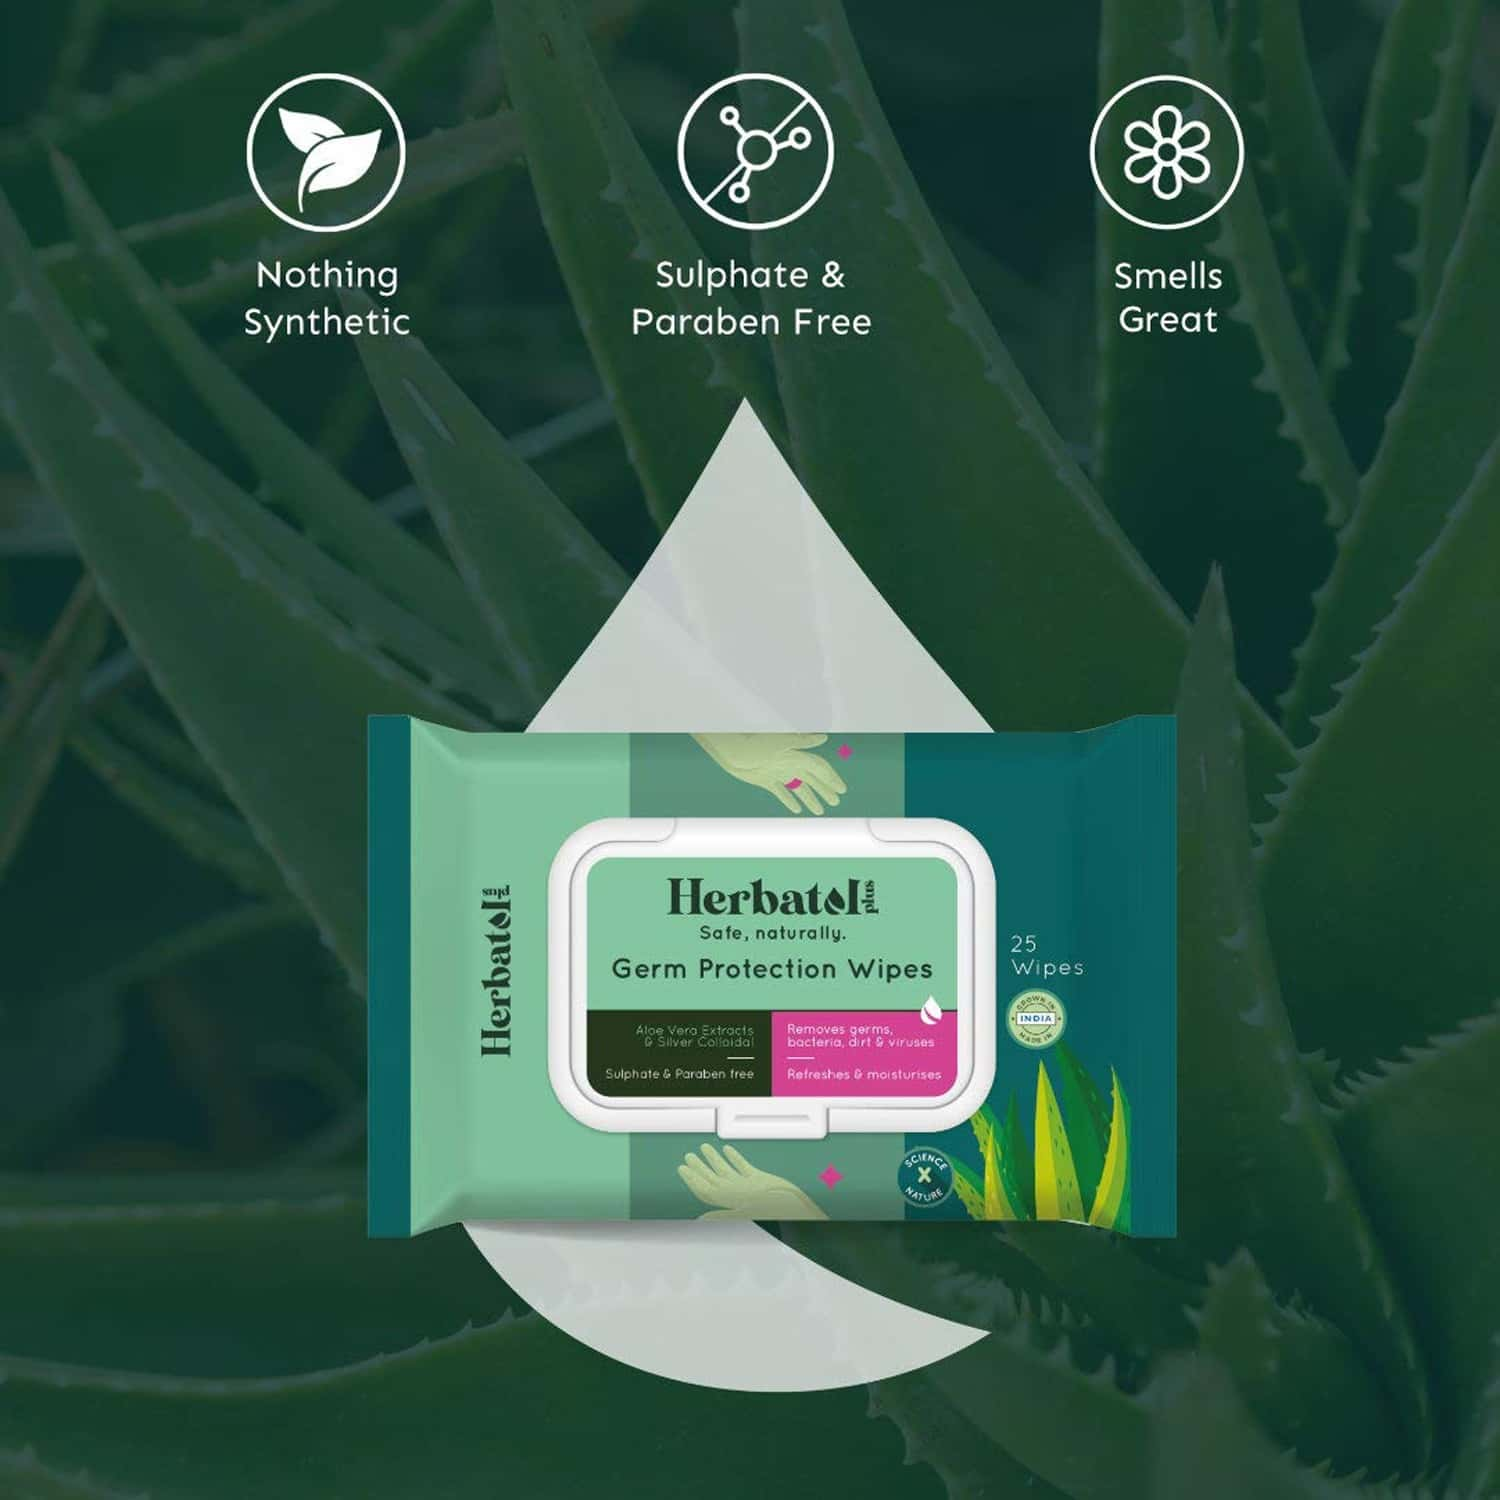 Herbatol Plus Germ Protection Wipes - 100% Biodegradable | Safe On Skin - Aloe Vera Extracts - 25's